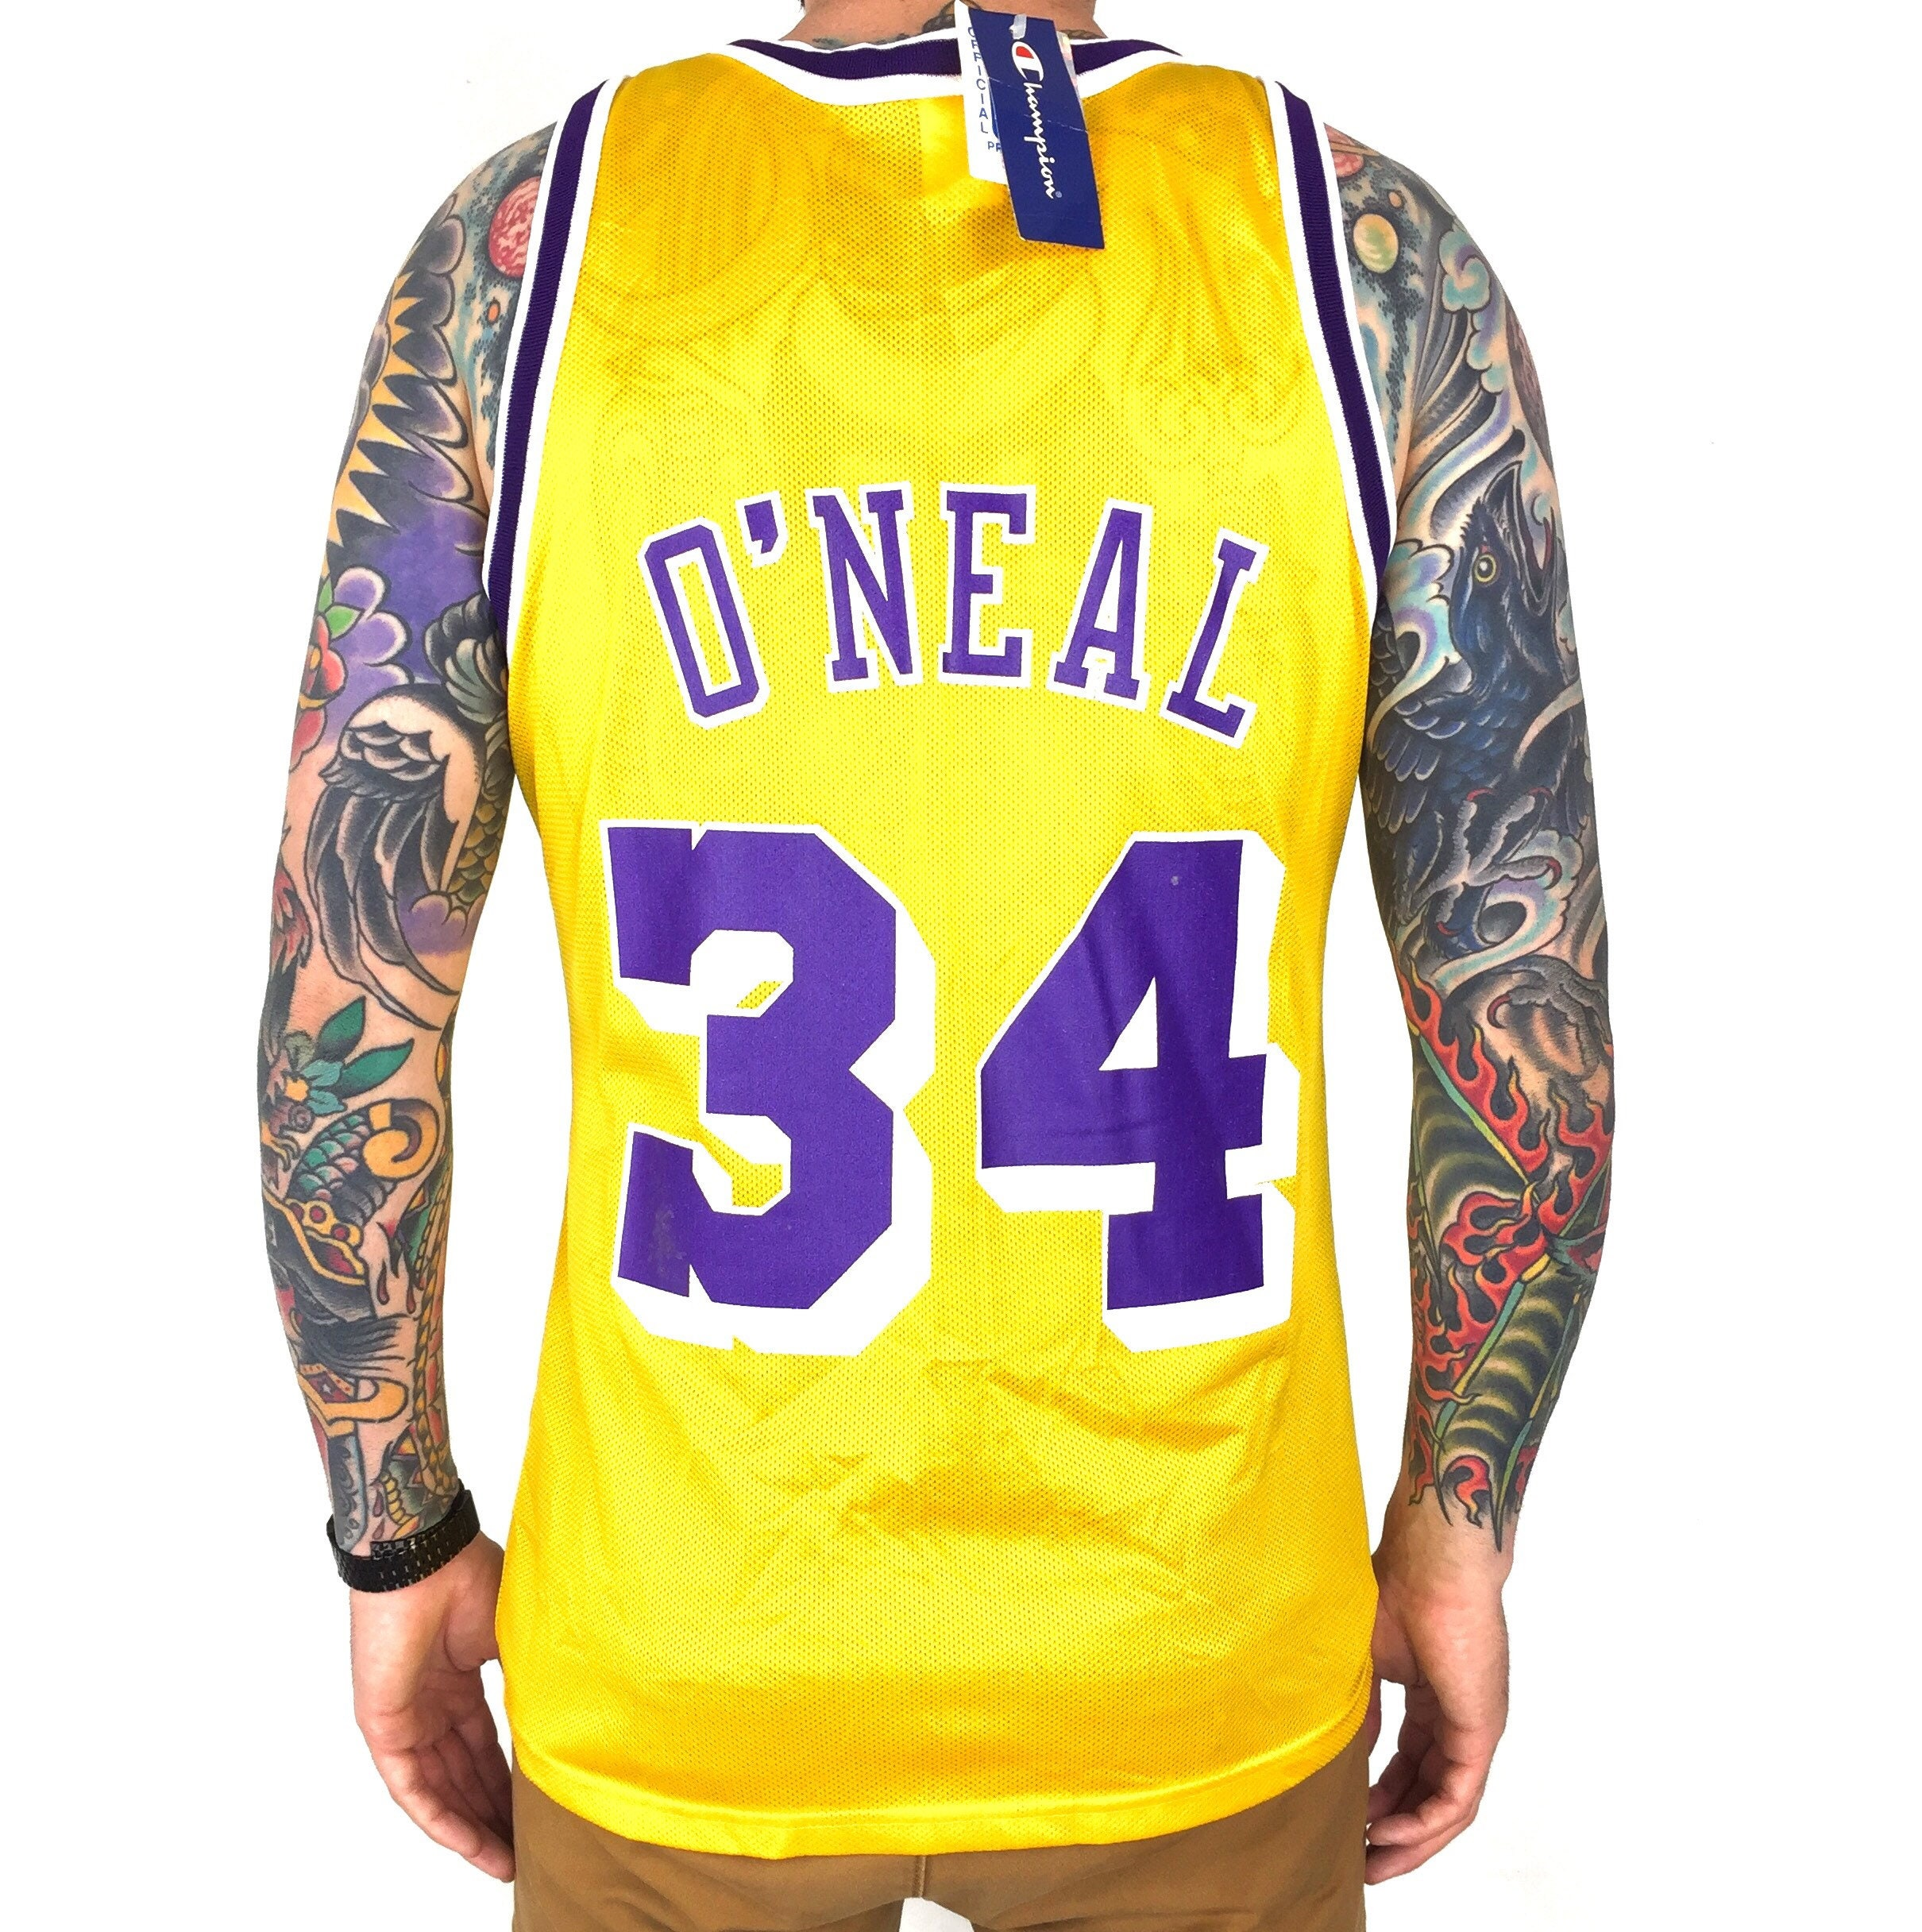 6d6c39324797 Rare Deadstock NWT Vintage 90s Champion NBA LA Los Angeles Lakers Shaq  Shaquille O Neal basketball jersey - Size 40   M